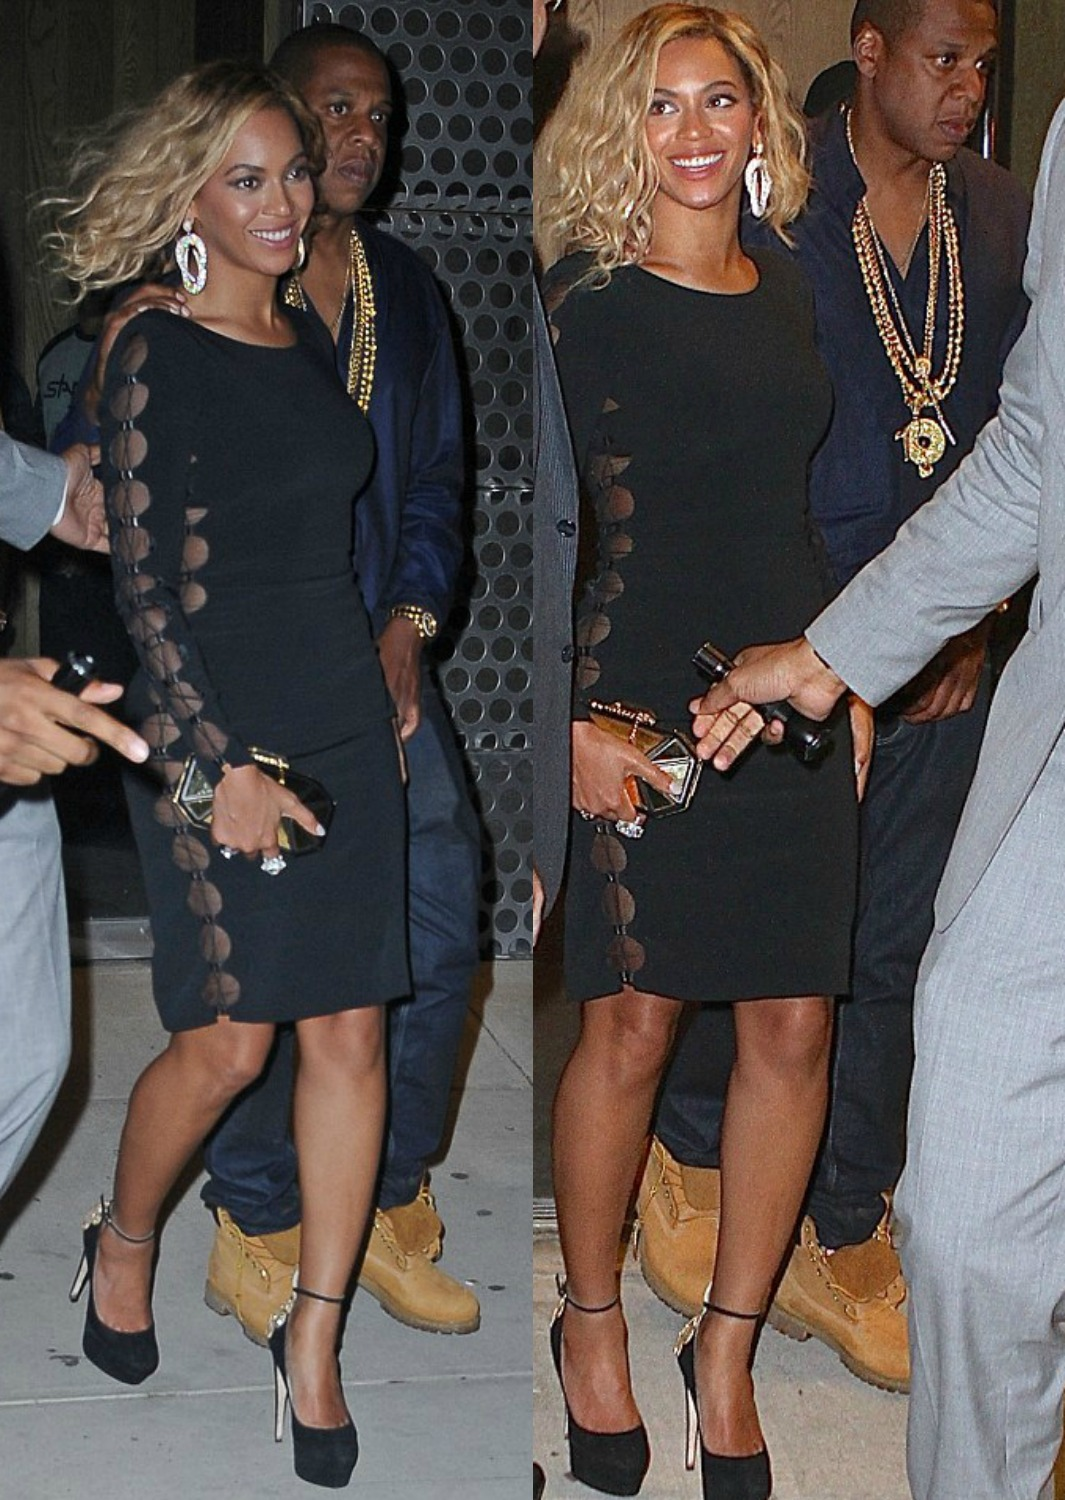 Beyonce And Jay-Z Breaks Up Fight Between J. Cole And P. Diddy At VMA After Party